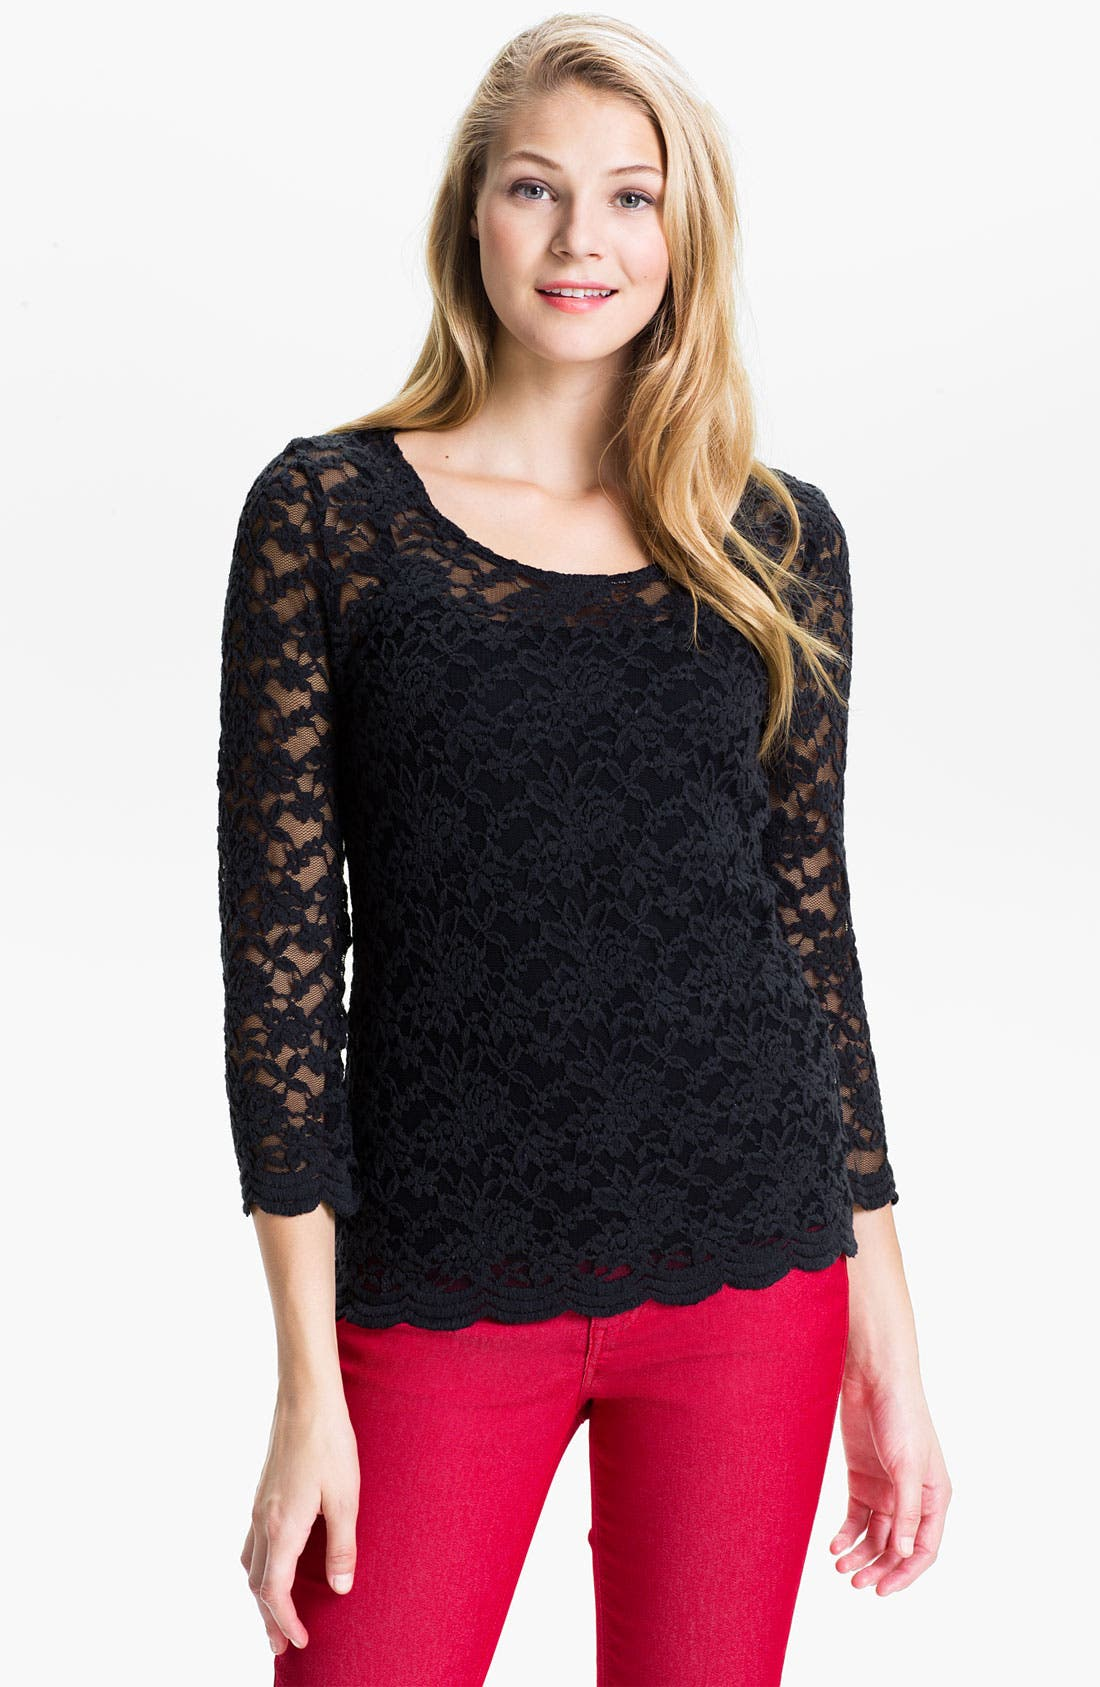 Main Image - KUT from the Kloth 'Mariela' Lace Top (Online Exclusive)